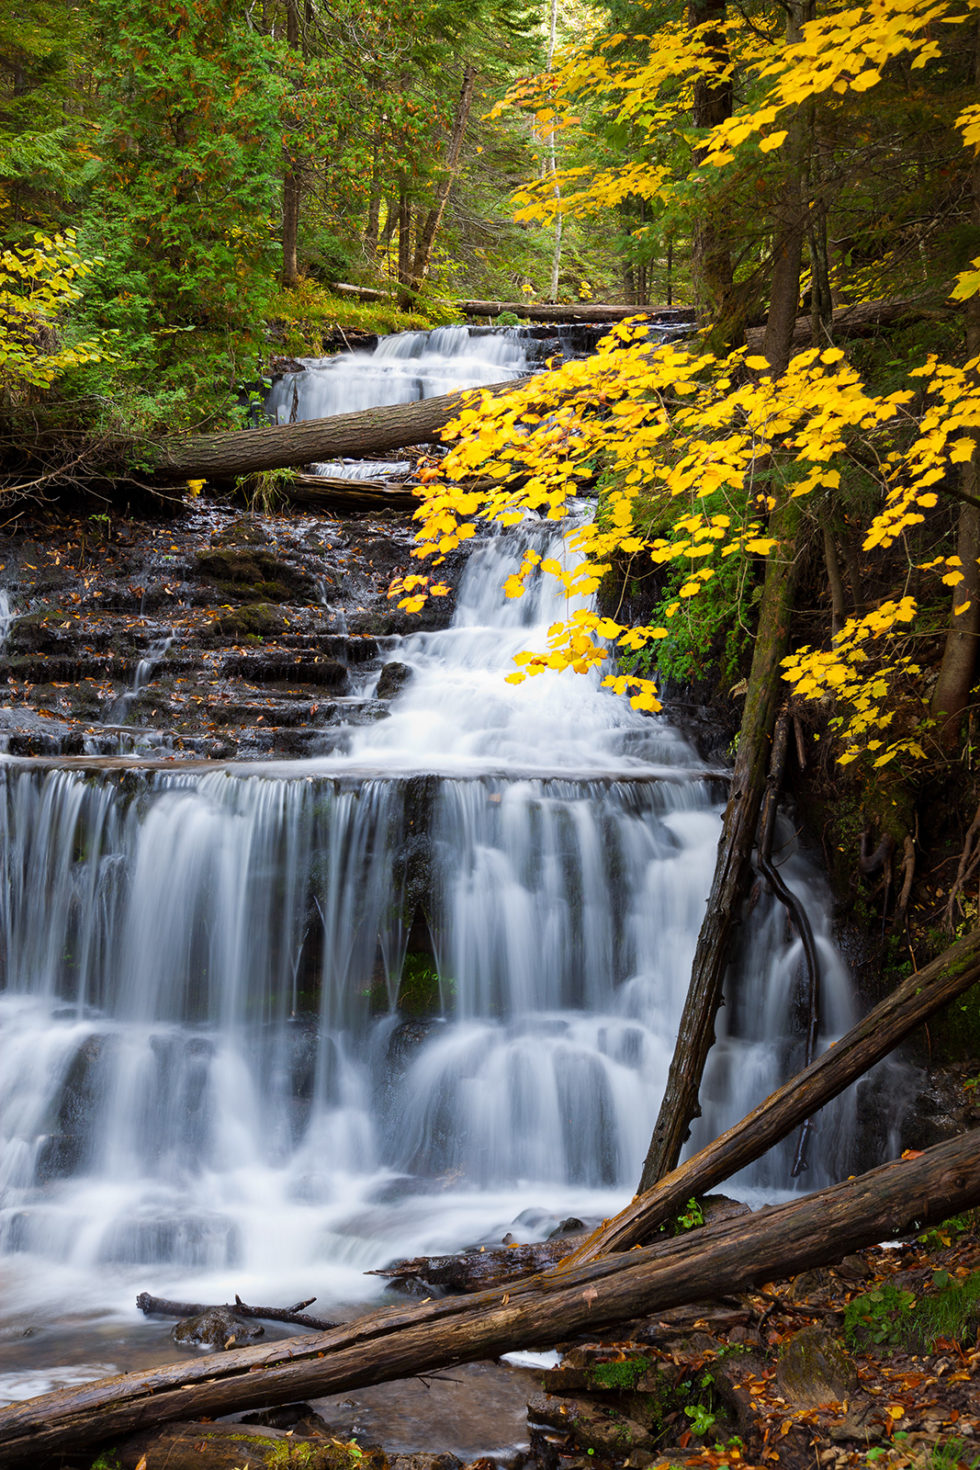 waterfall in upper peninsula michigan